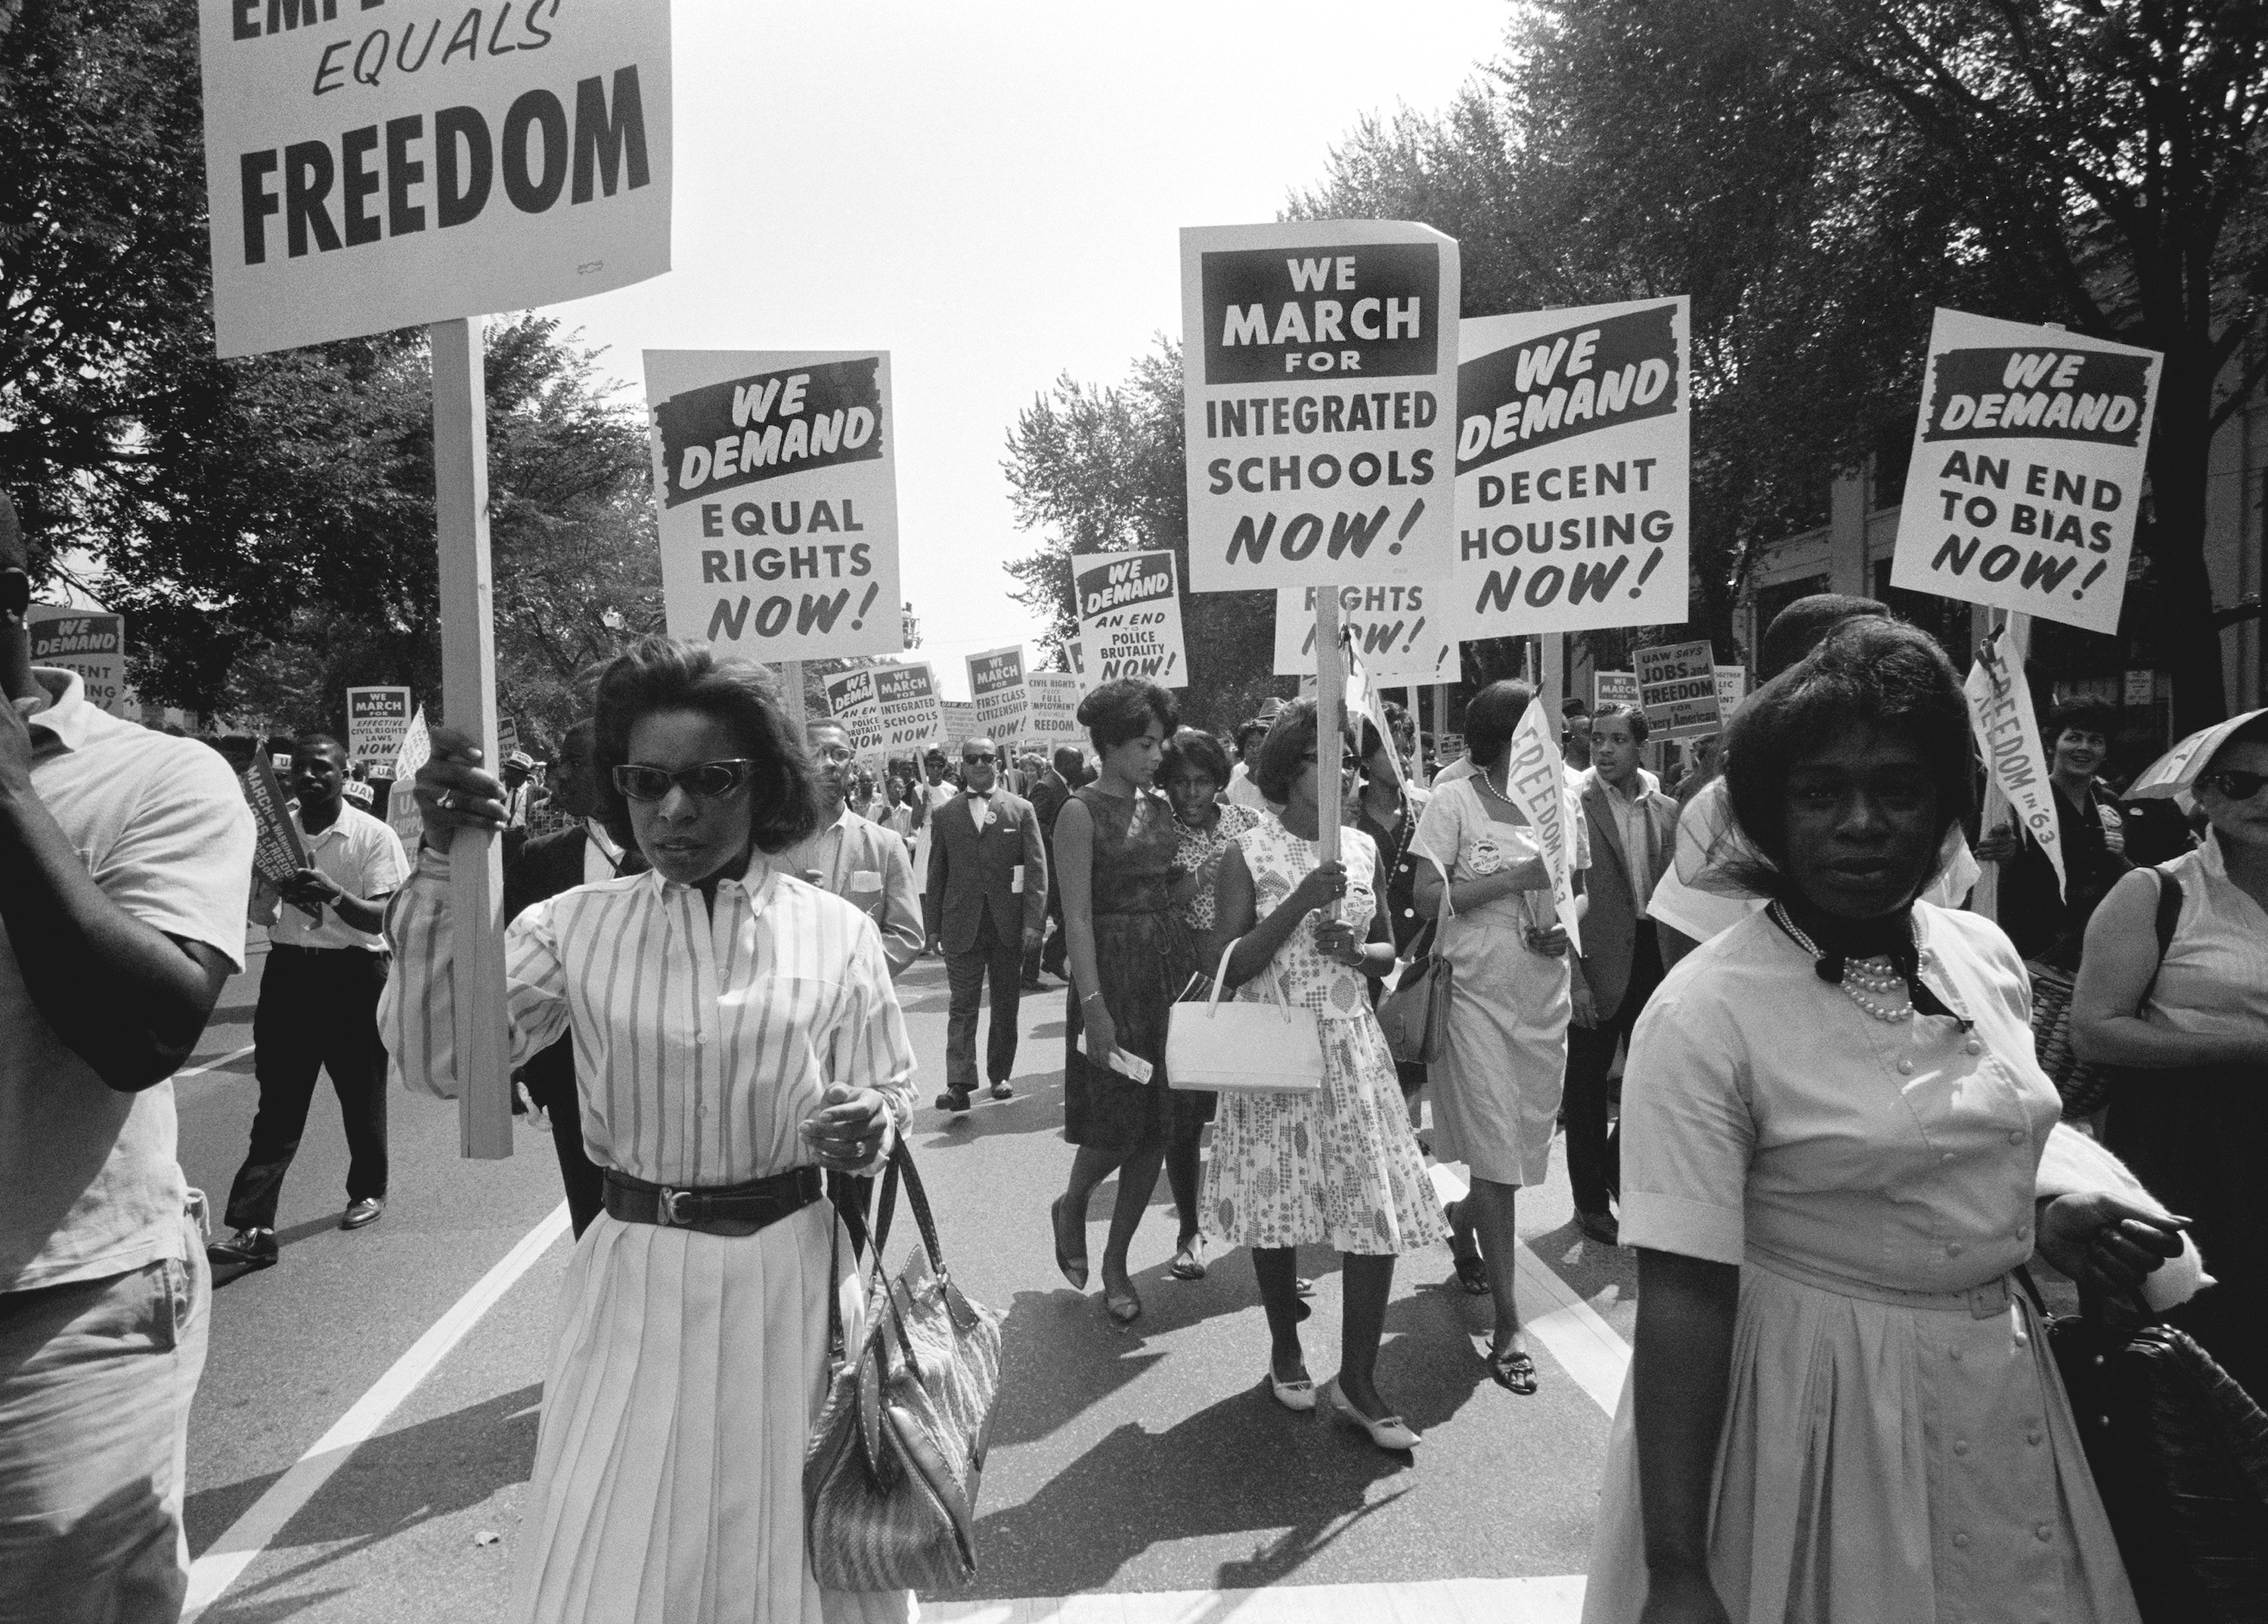 """Black women marching in the March on Washington with signs that say, """"We march for integrated schools nows,"""" """"We demand equal rights now,"""" """"We demand decent housing now,"""" and """"We demand an end to bias now."""""""